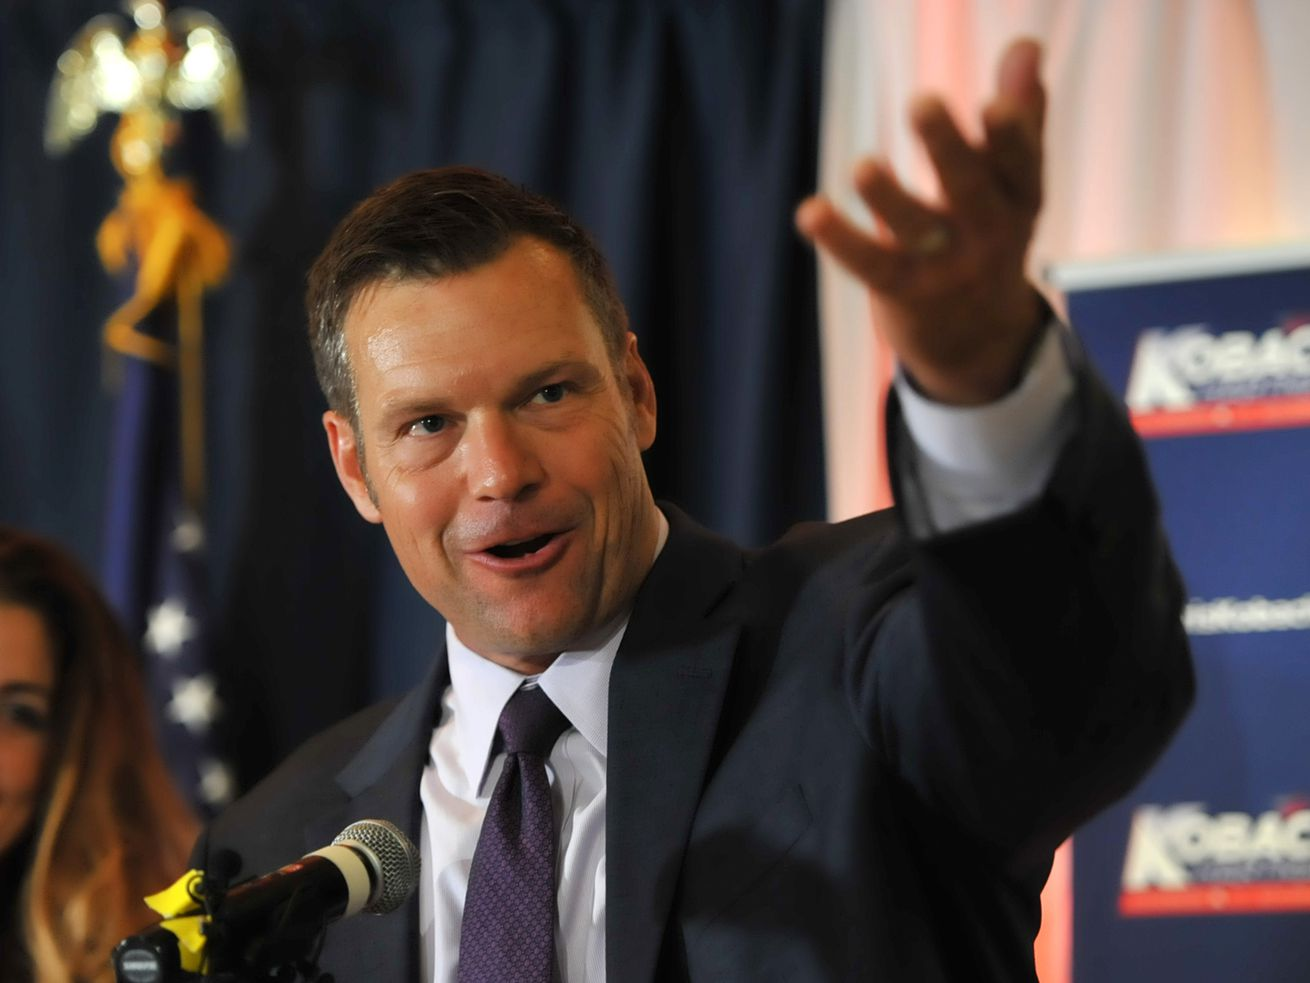 Kris Kobach attends his primary night gathering In Topeka, Kansas, on August 7, 2018.